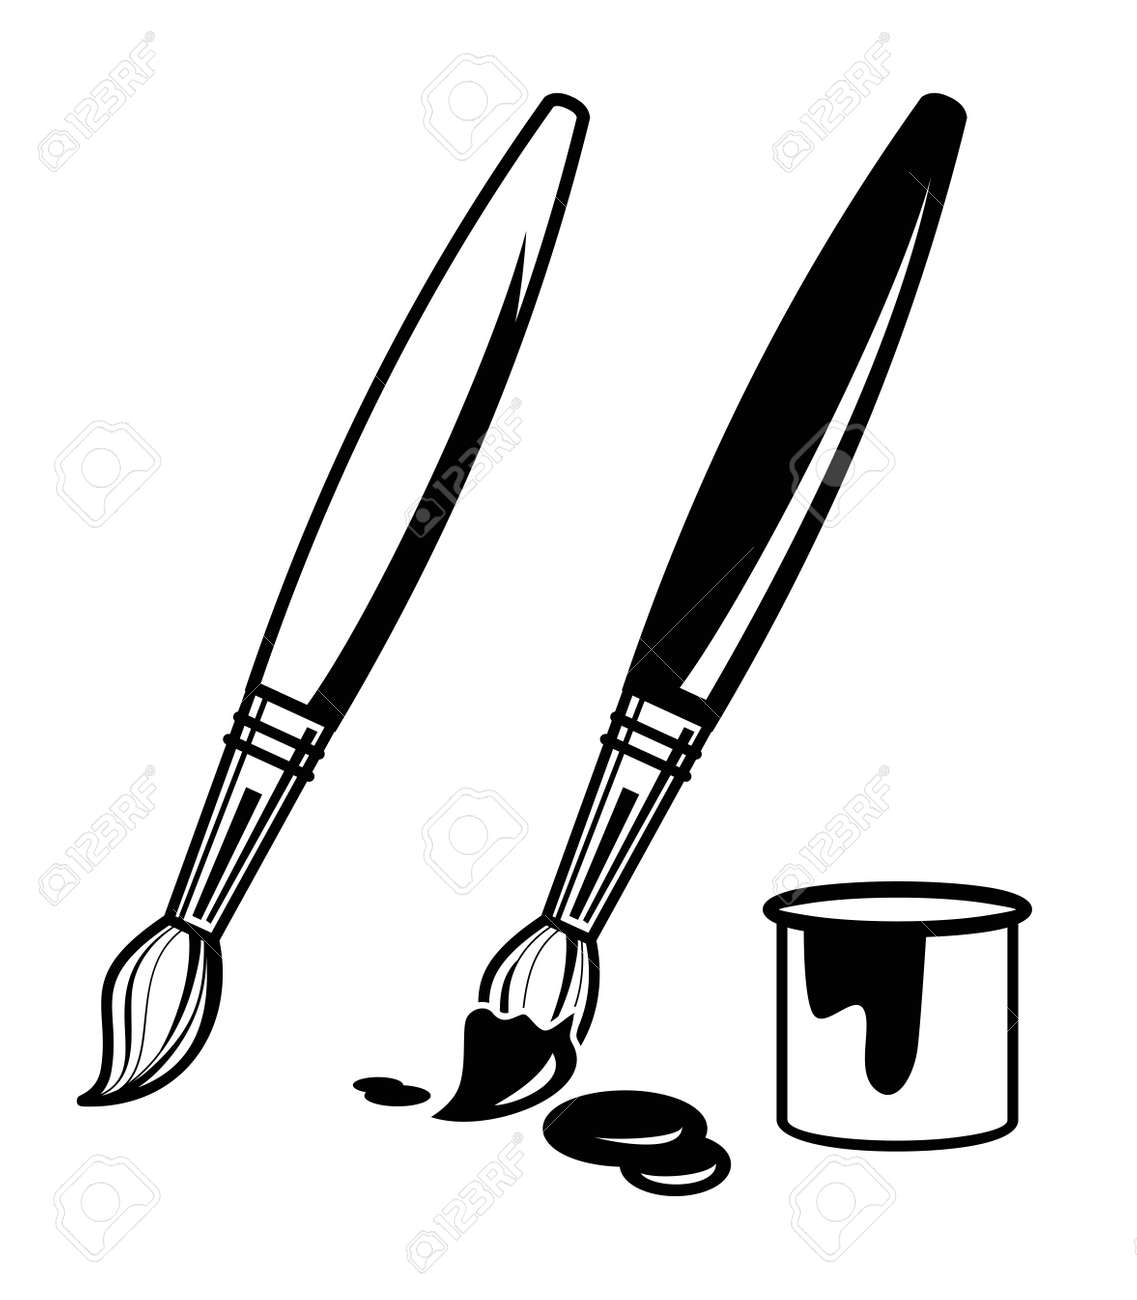 vector black paint brush icon on white background royalty free rh 123rf com vector paintbrush circle paint brush vector free download